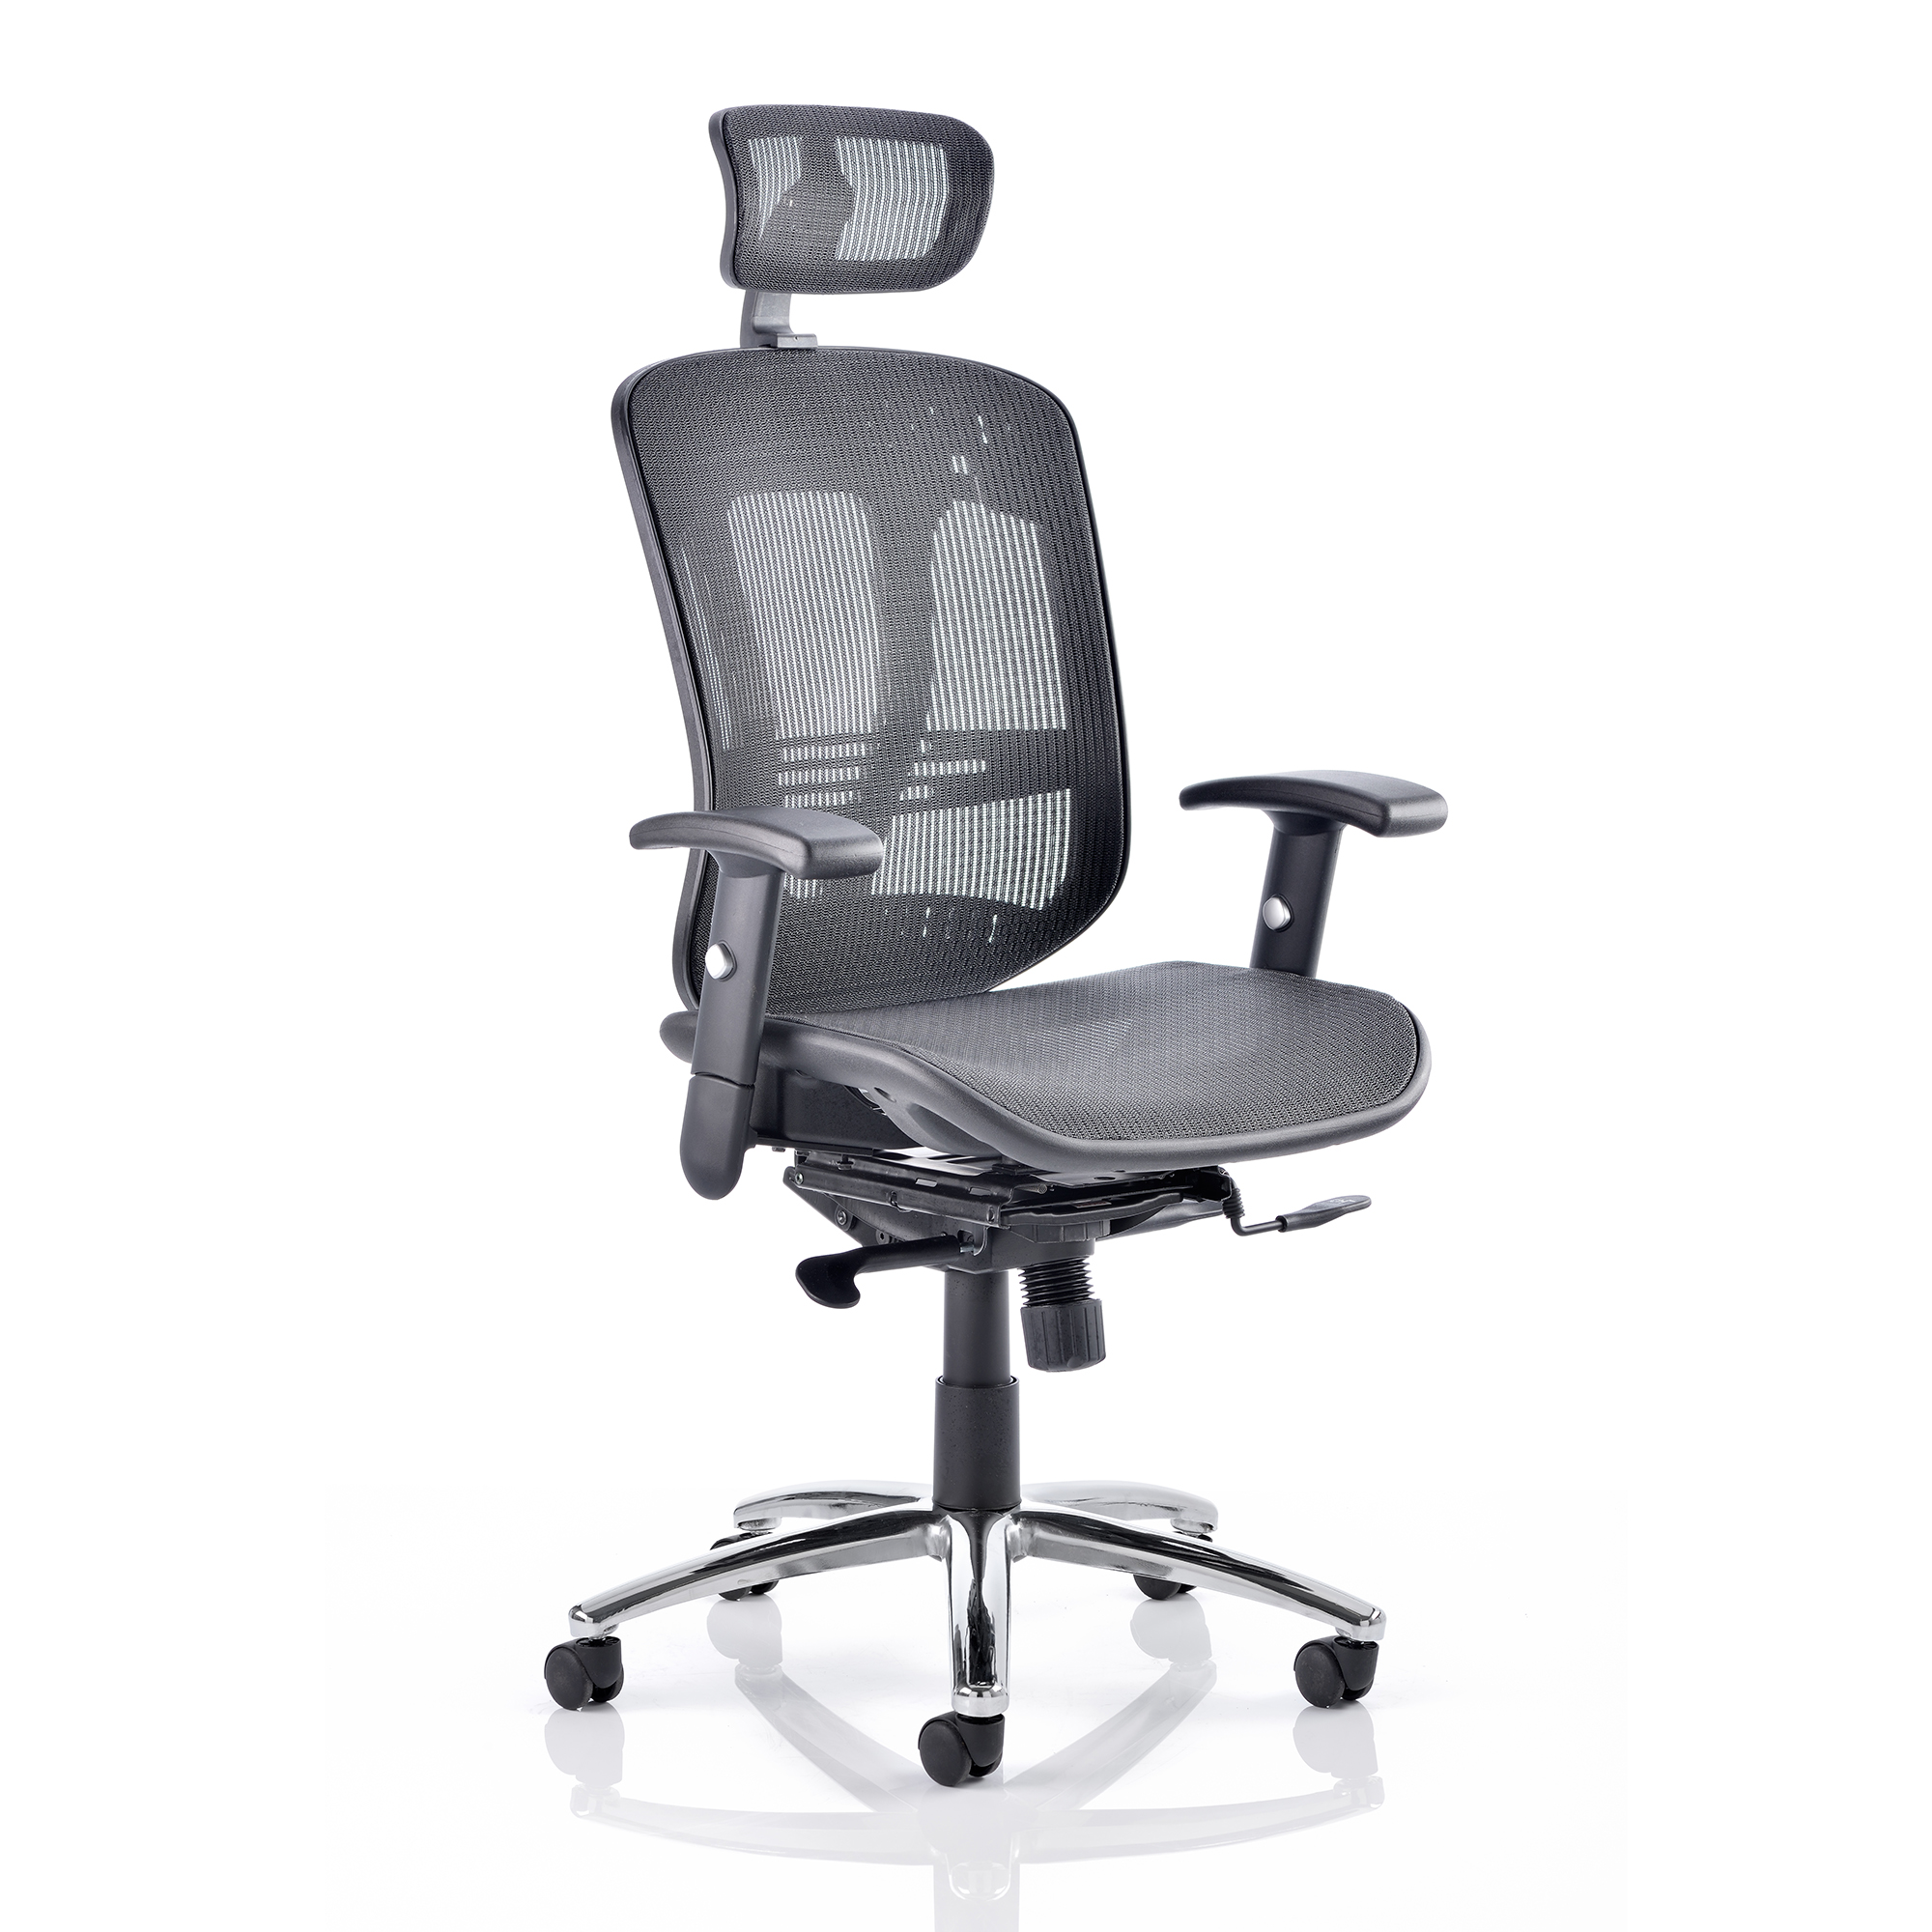 Executive seating Adroit Mirage II Executive Chair With Arms With Headrest Mesh Black Ref KC0148